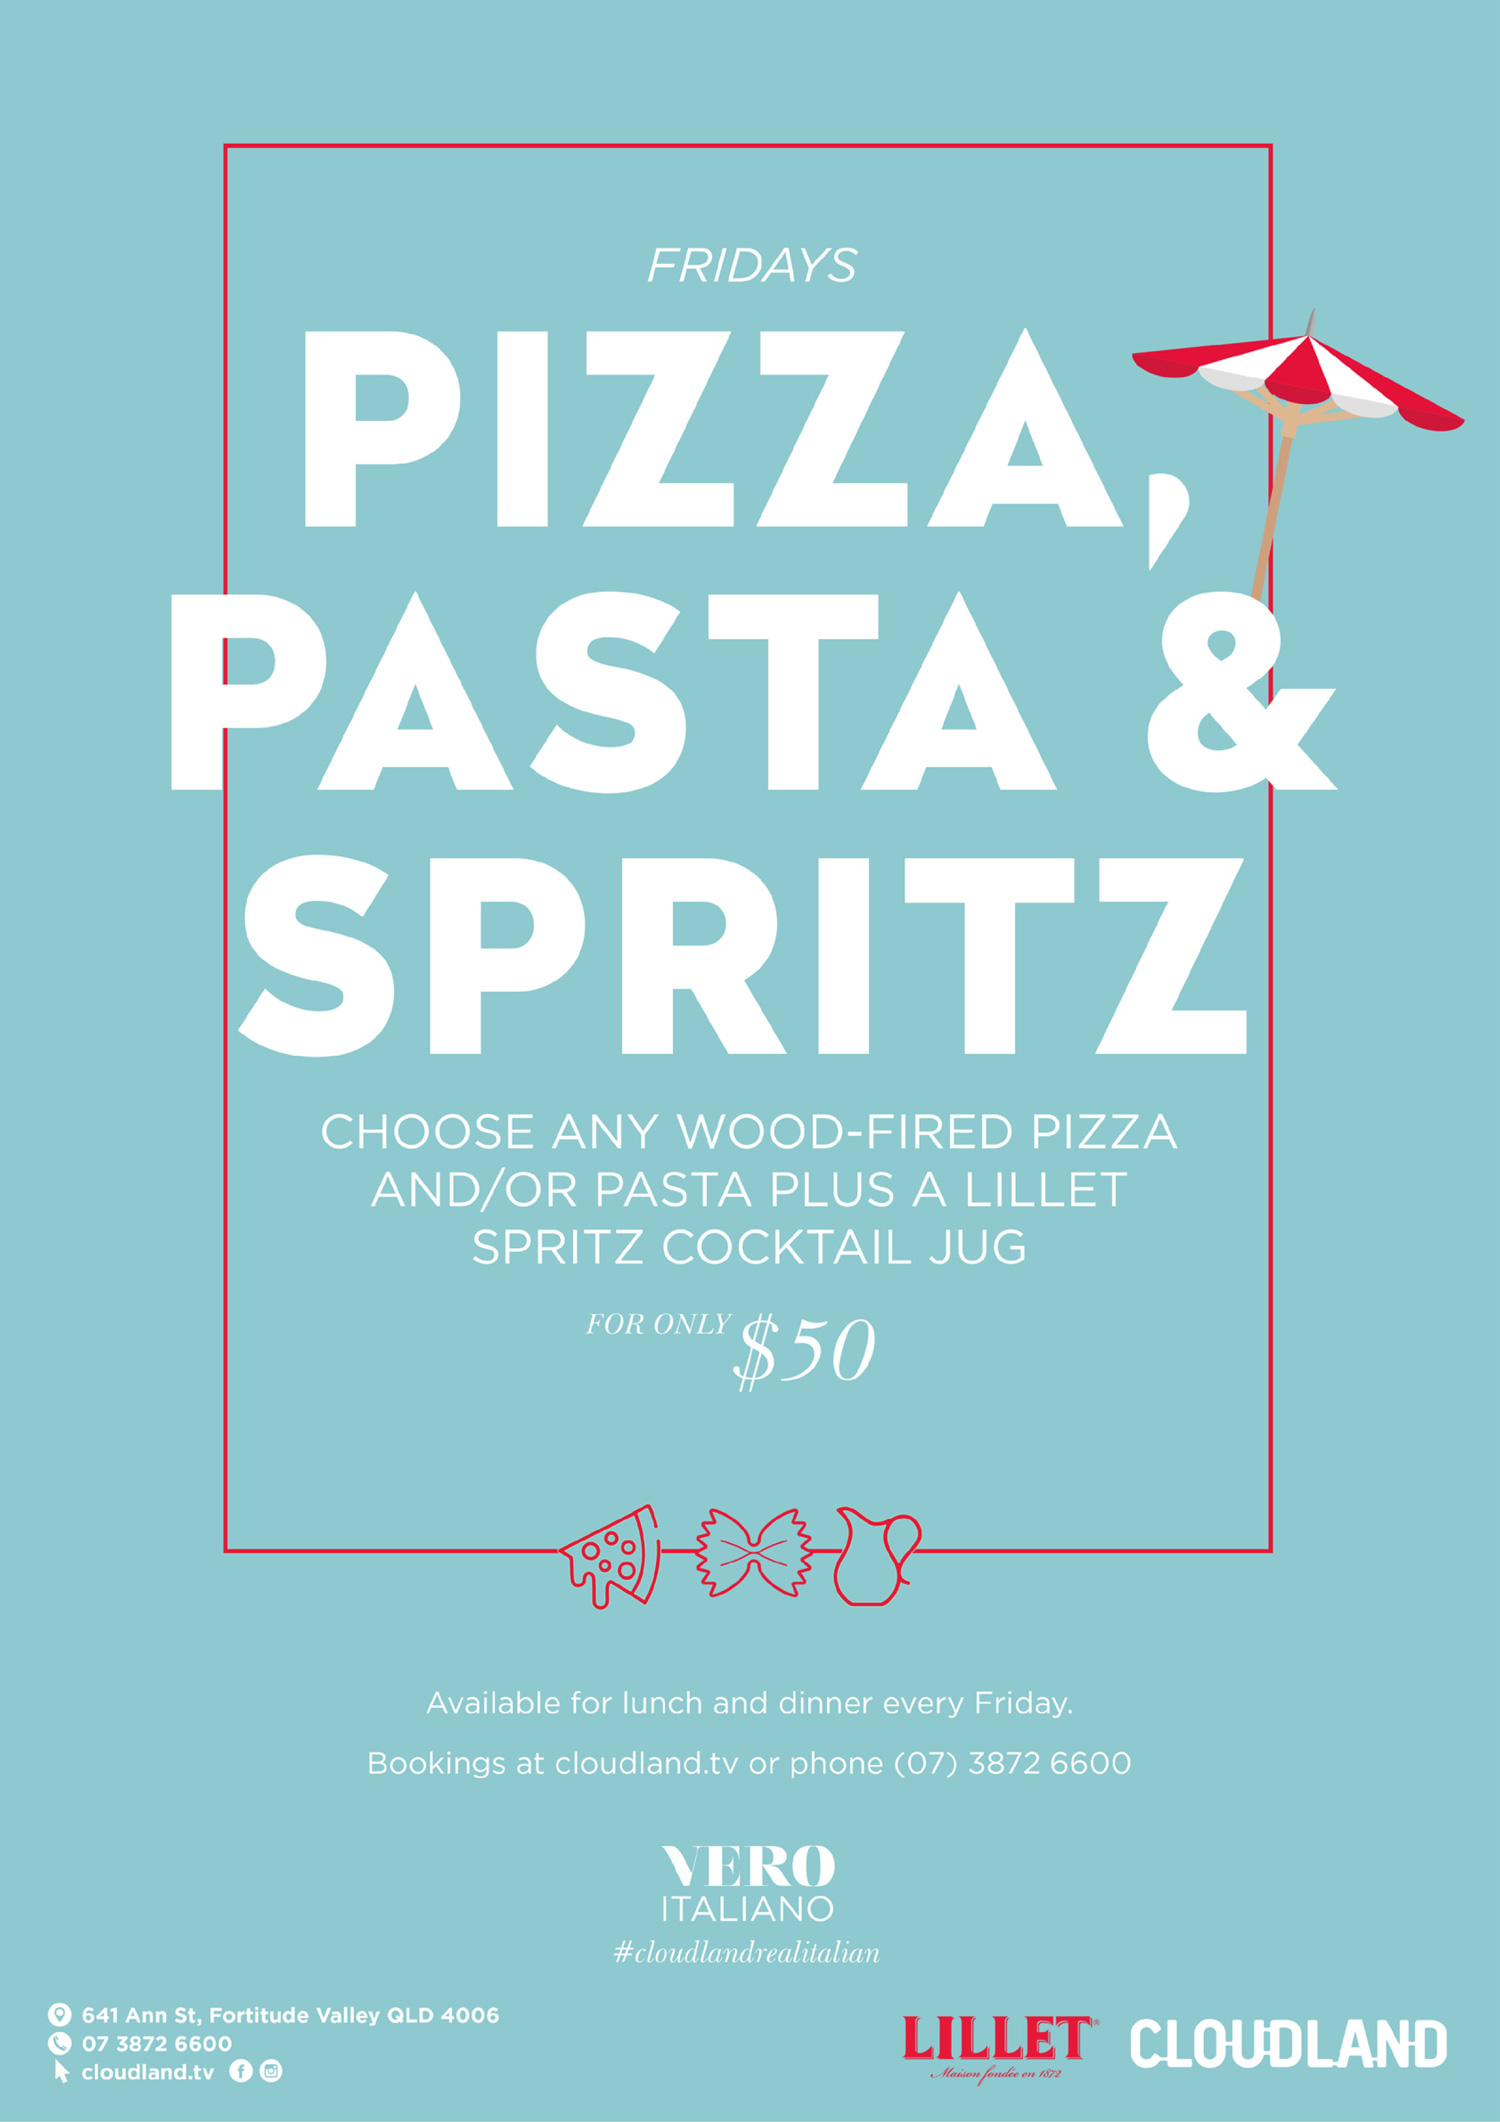 Cloudland Pizza, Pasta and Spritz Friday